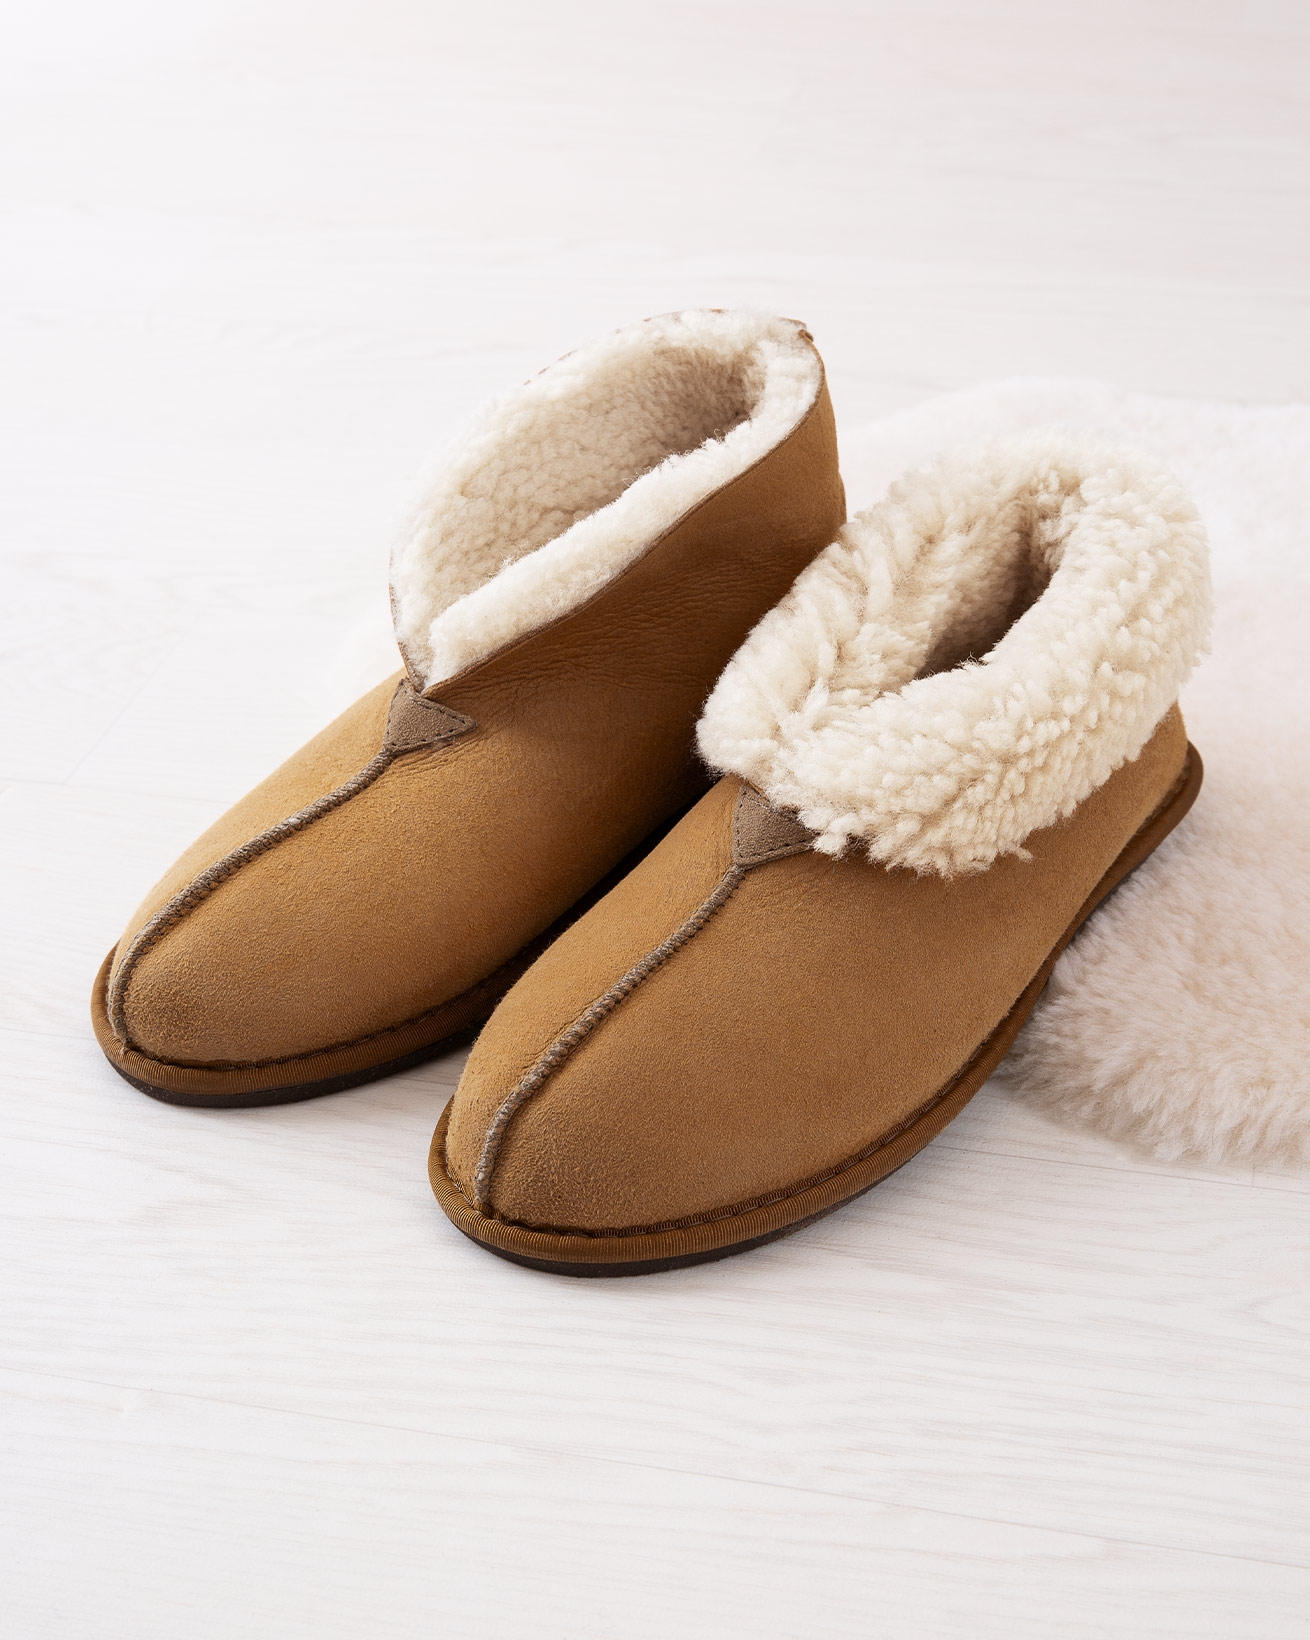 Men's Shearling Bootee Slipper